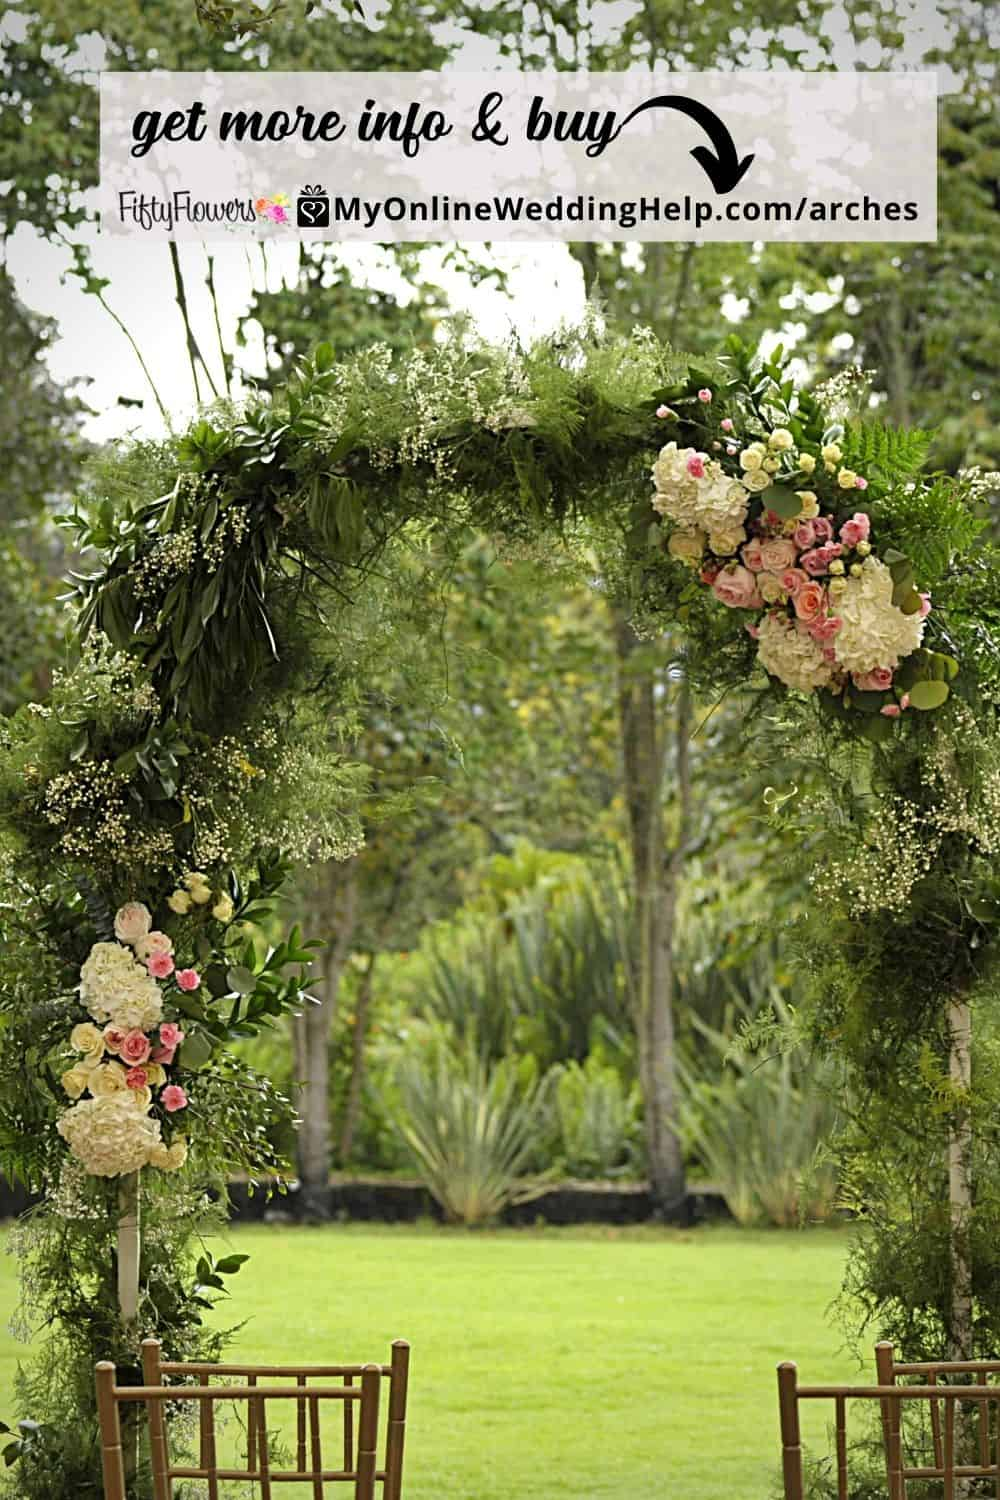 DIY Wedding Arch - The Blushing Love wedding flowers collection